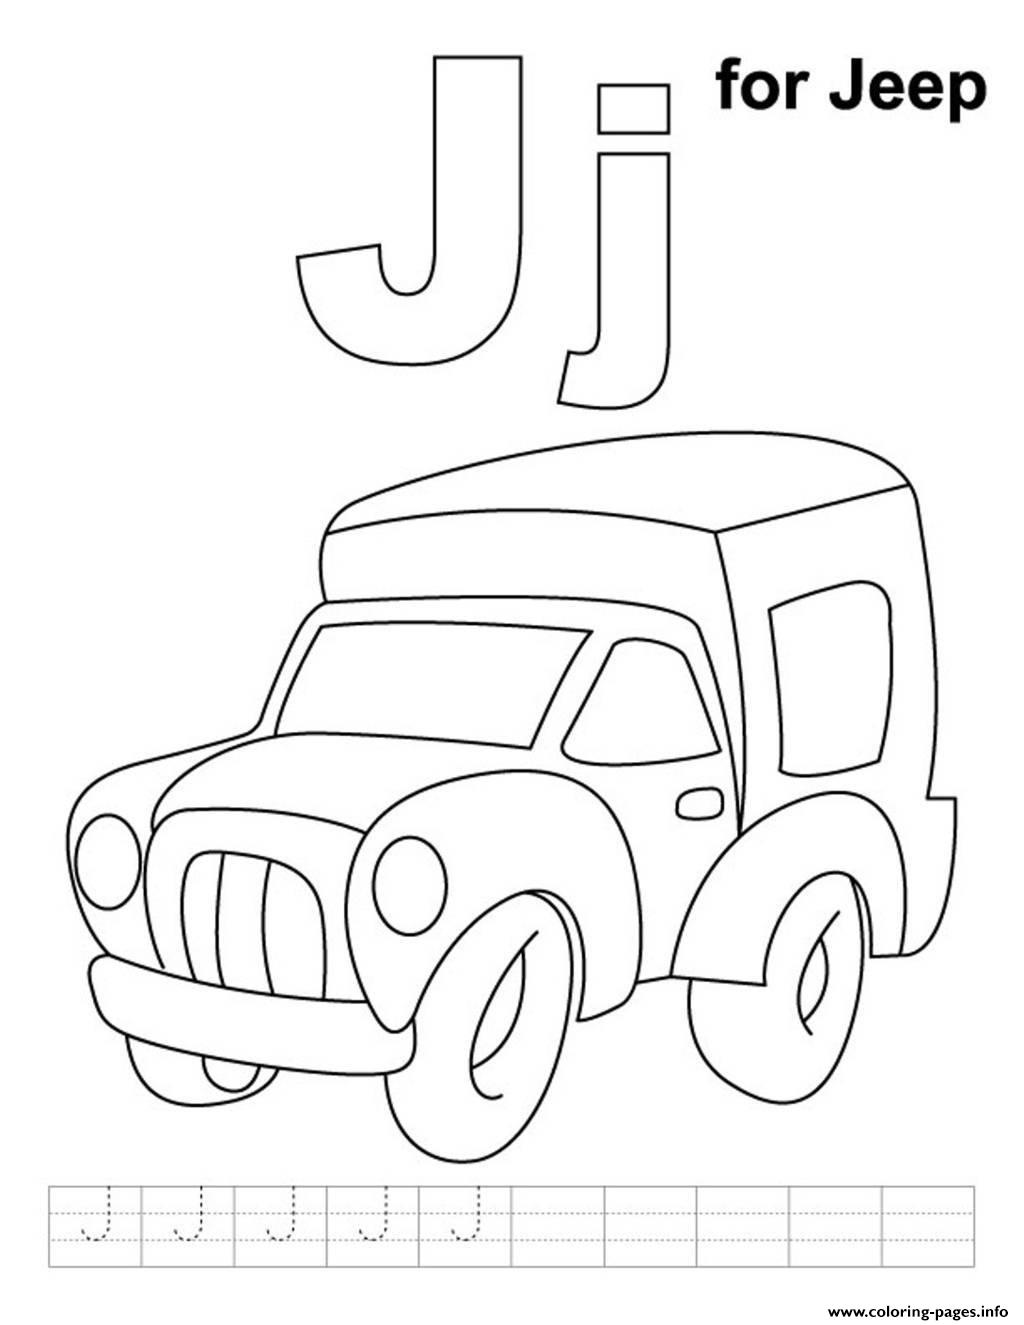 Alphabet J For Jeepa9c0 Coloring Pages Printable